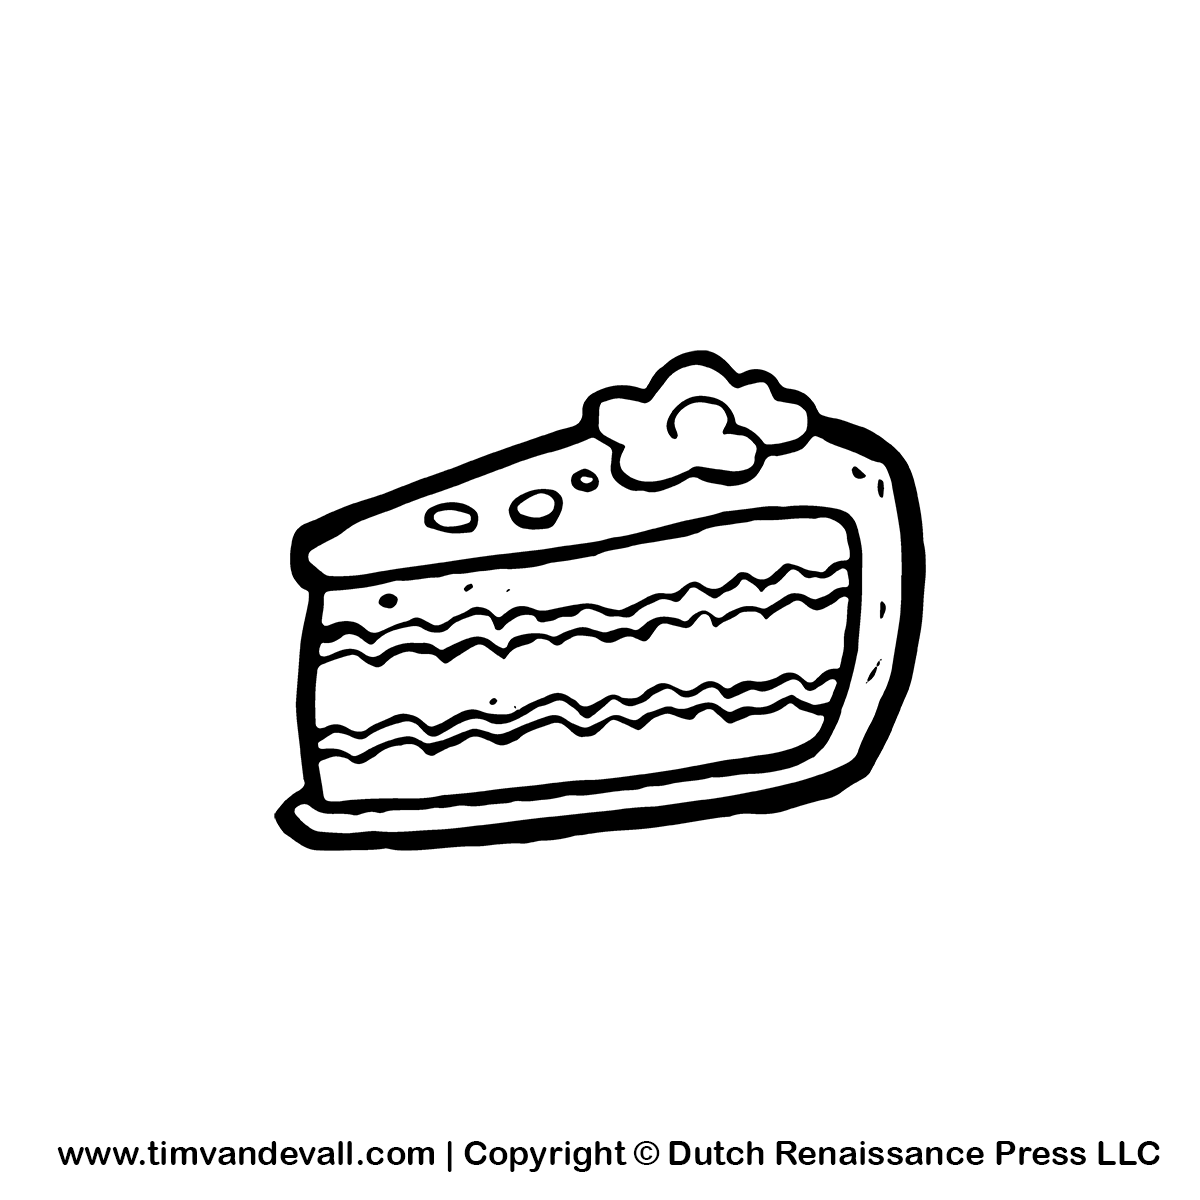 Slice Of Cake Clipart Image : Birthday Cake Slice Clipart - Clipart Suggest